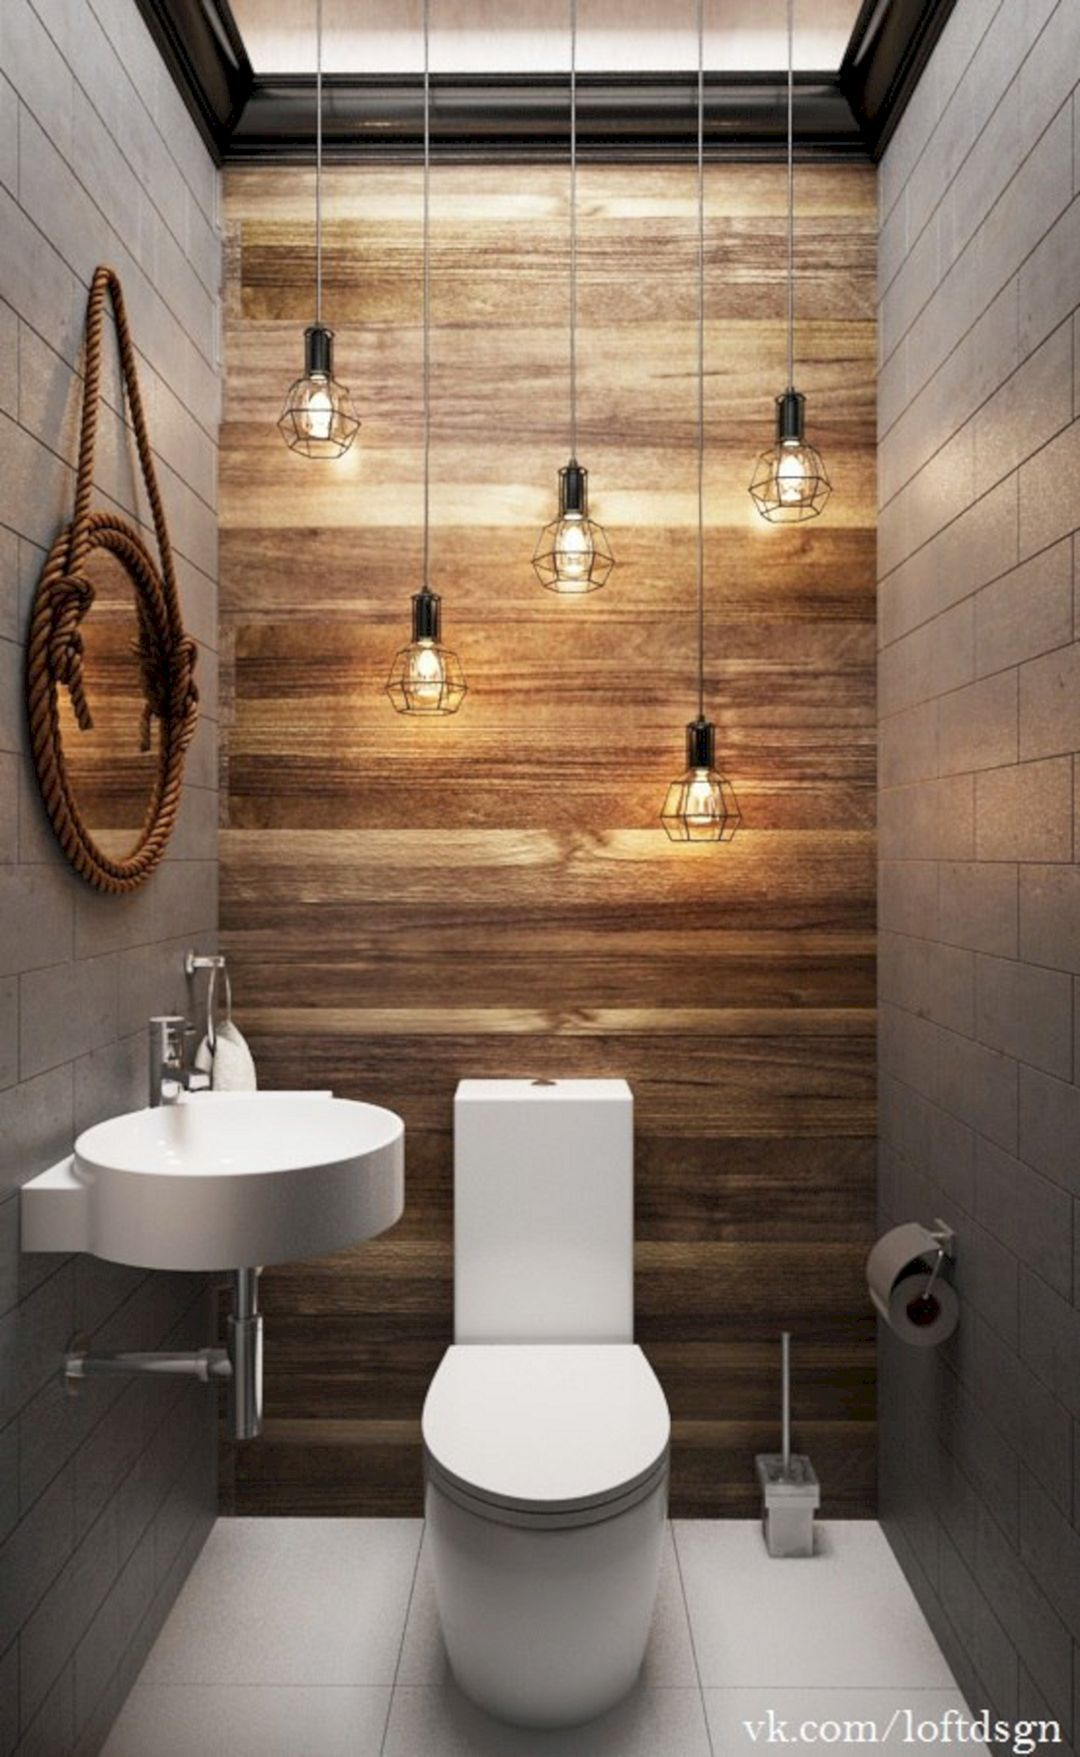 That Is Why Contemporary Lighting S Blog Gathered The 8 Modern Hotels In Paris You Shoul Modern Farmhouse Bathroom Small Bathroom Remodel Bathroom Design Small